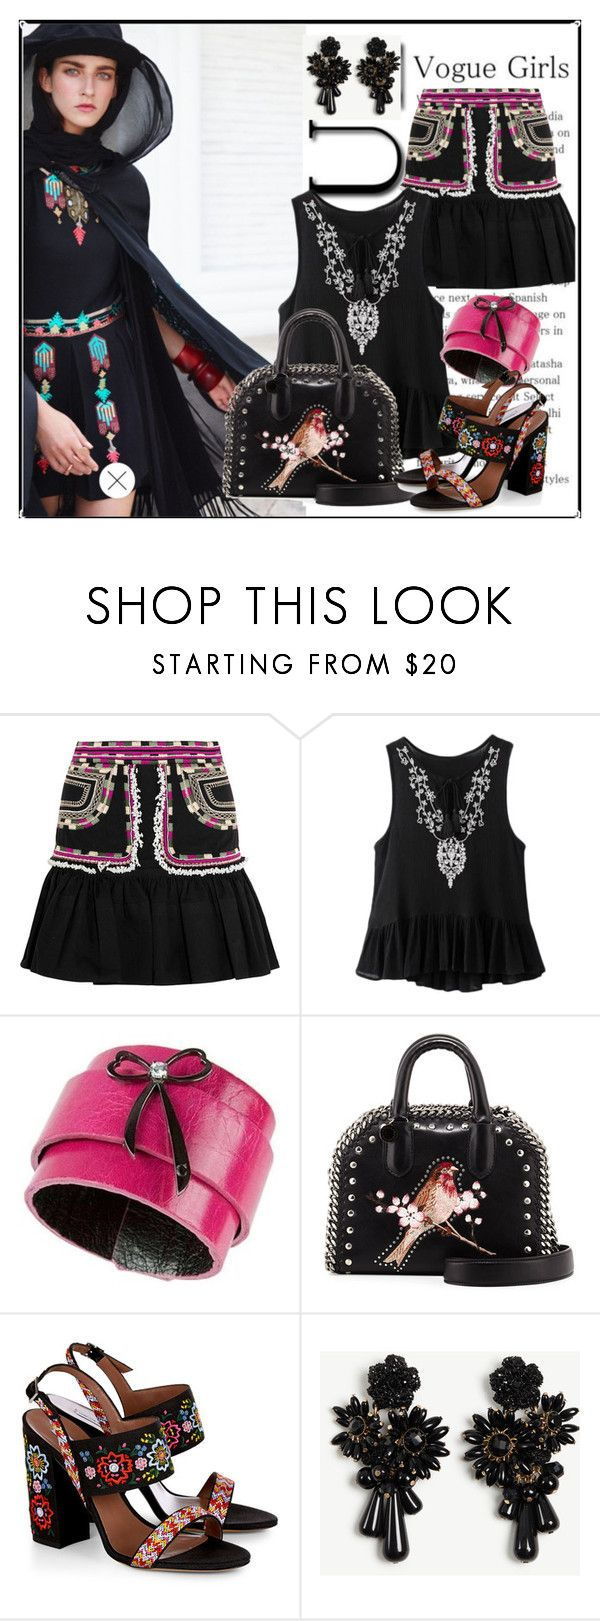 """""""vogue girls"""" by barones-tania ❤ liked on Polyvore featuring Isabel Marant, STELLA McCARTNEY, Tabitha Simmons and Ann Taylor"""